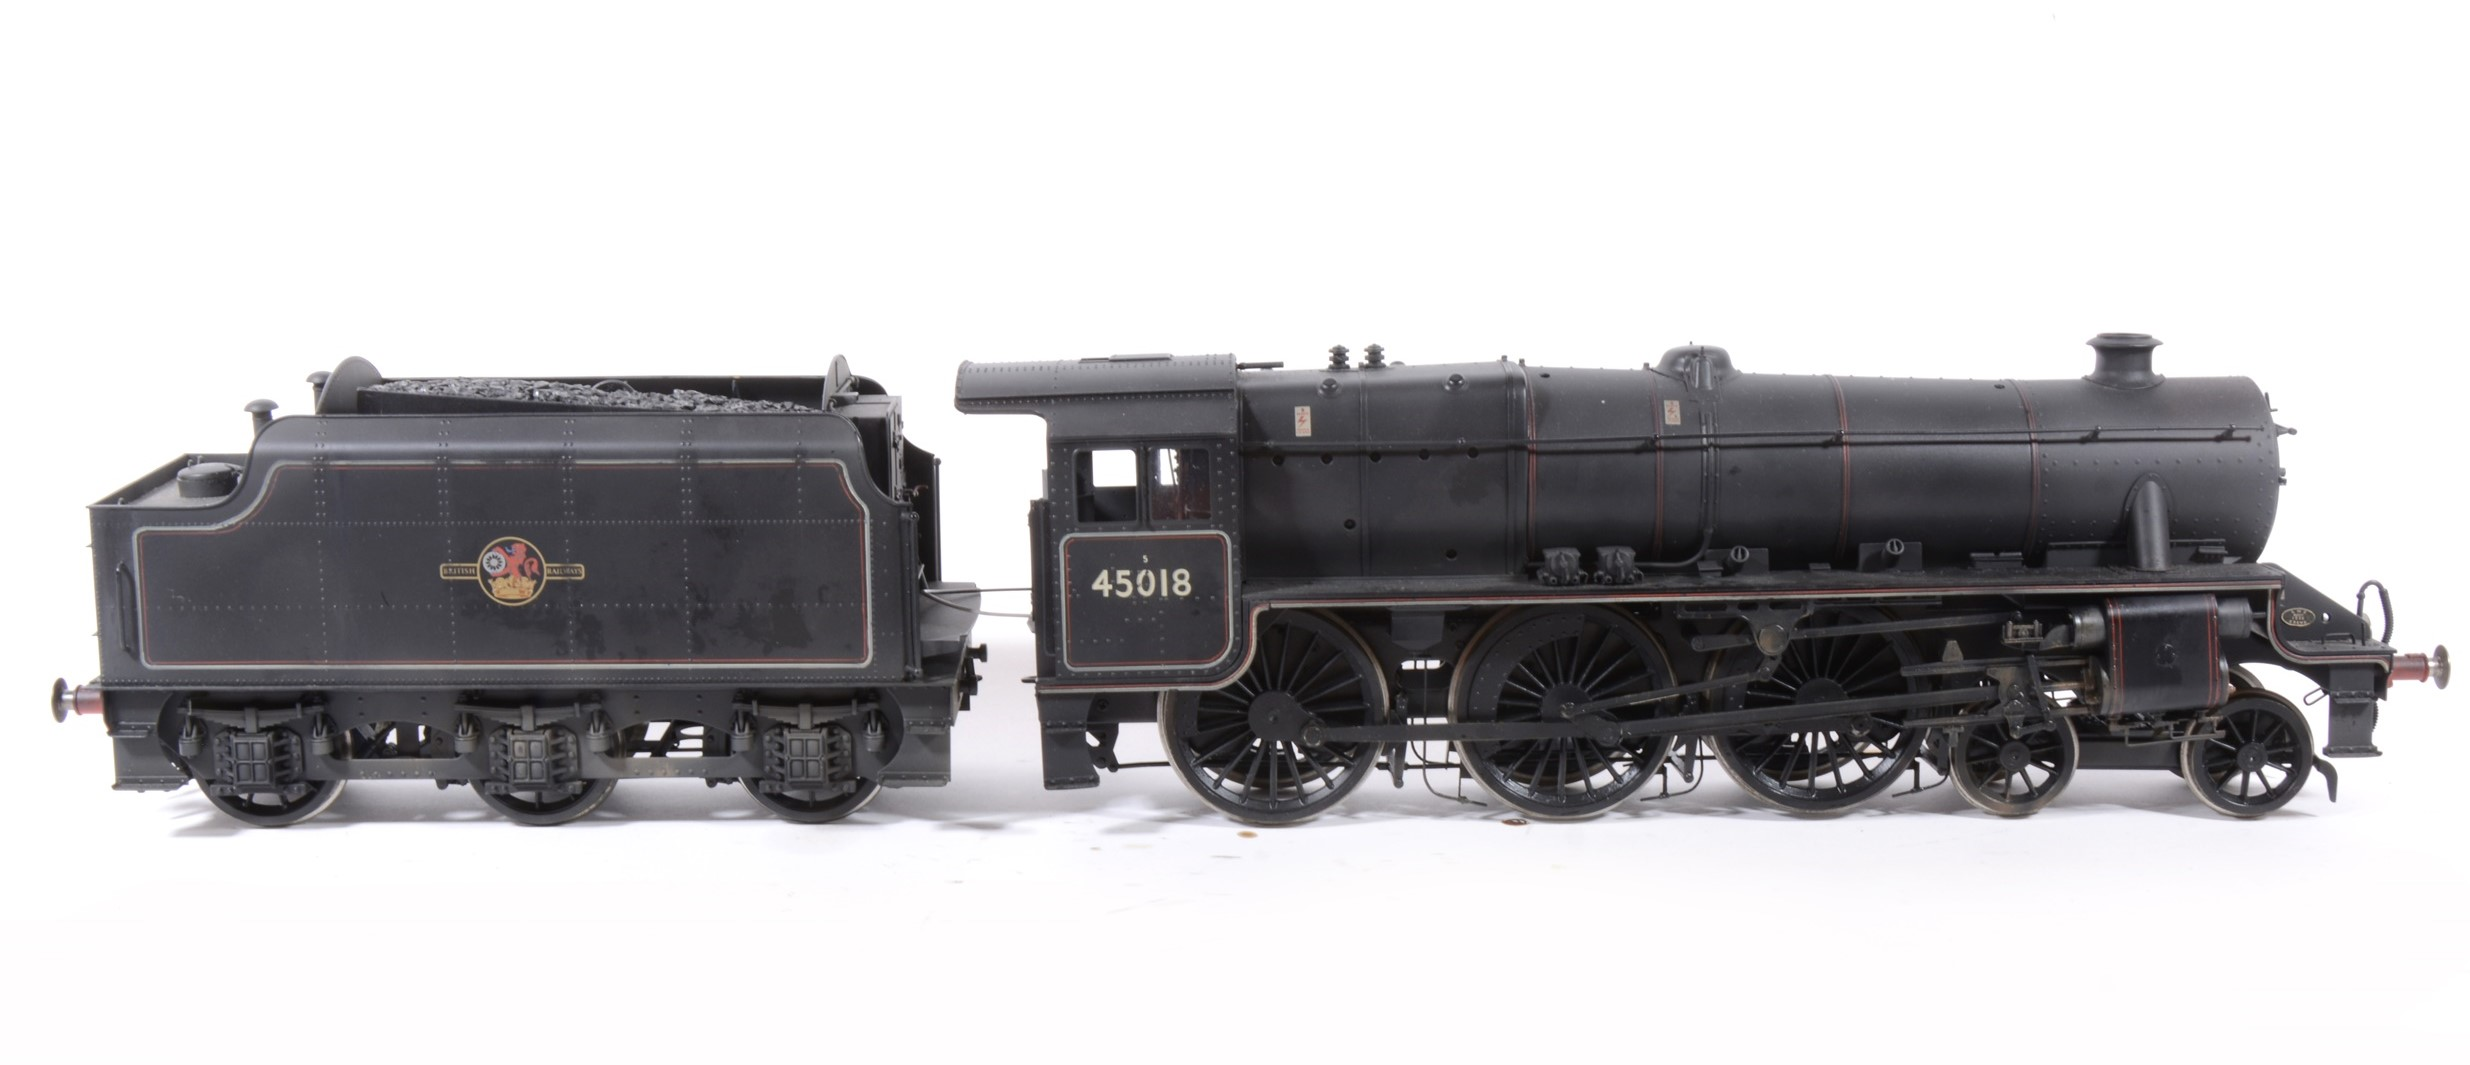 Bachmann electric, gauge 1 / G scale, 45mm locomotive and tender